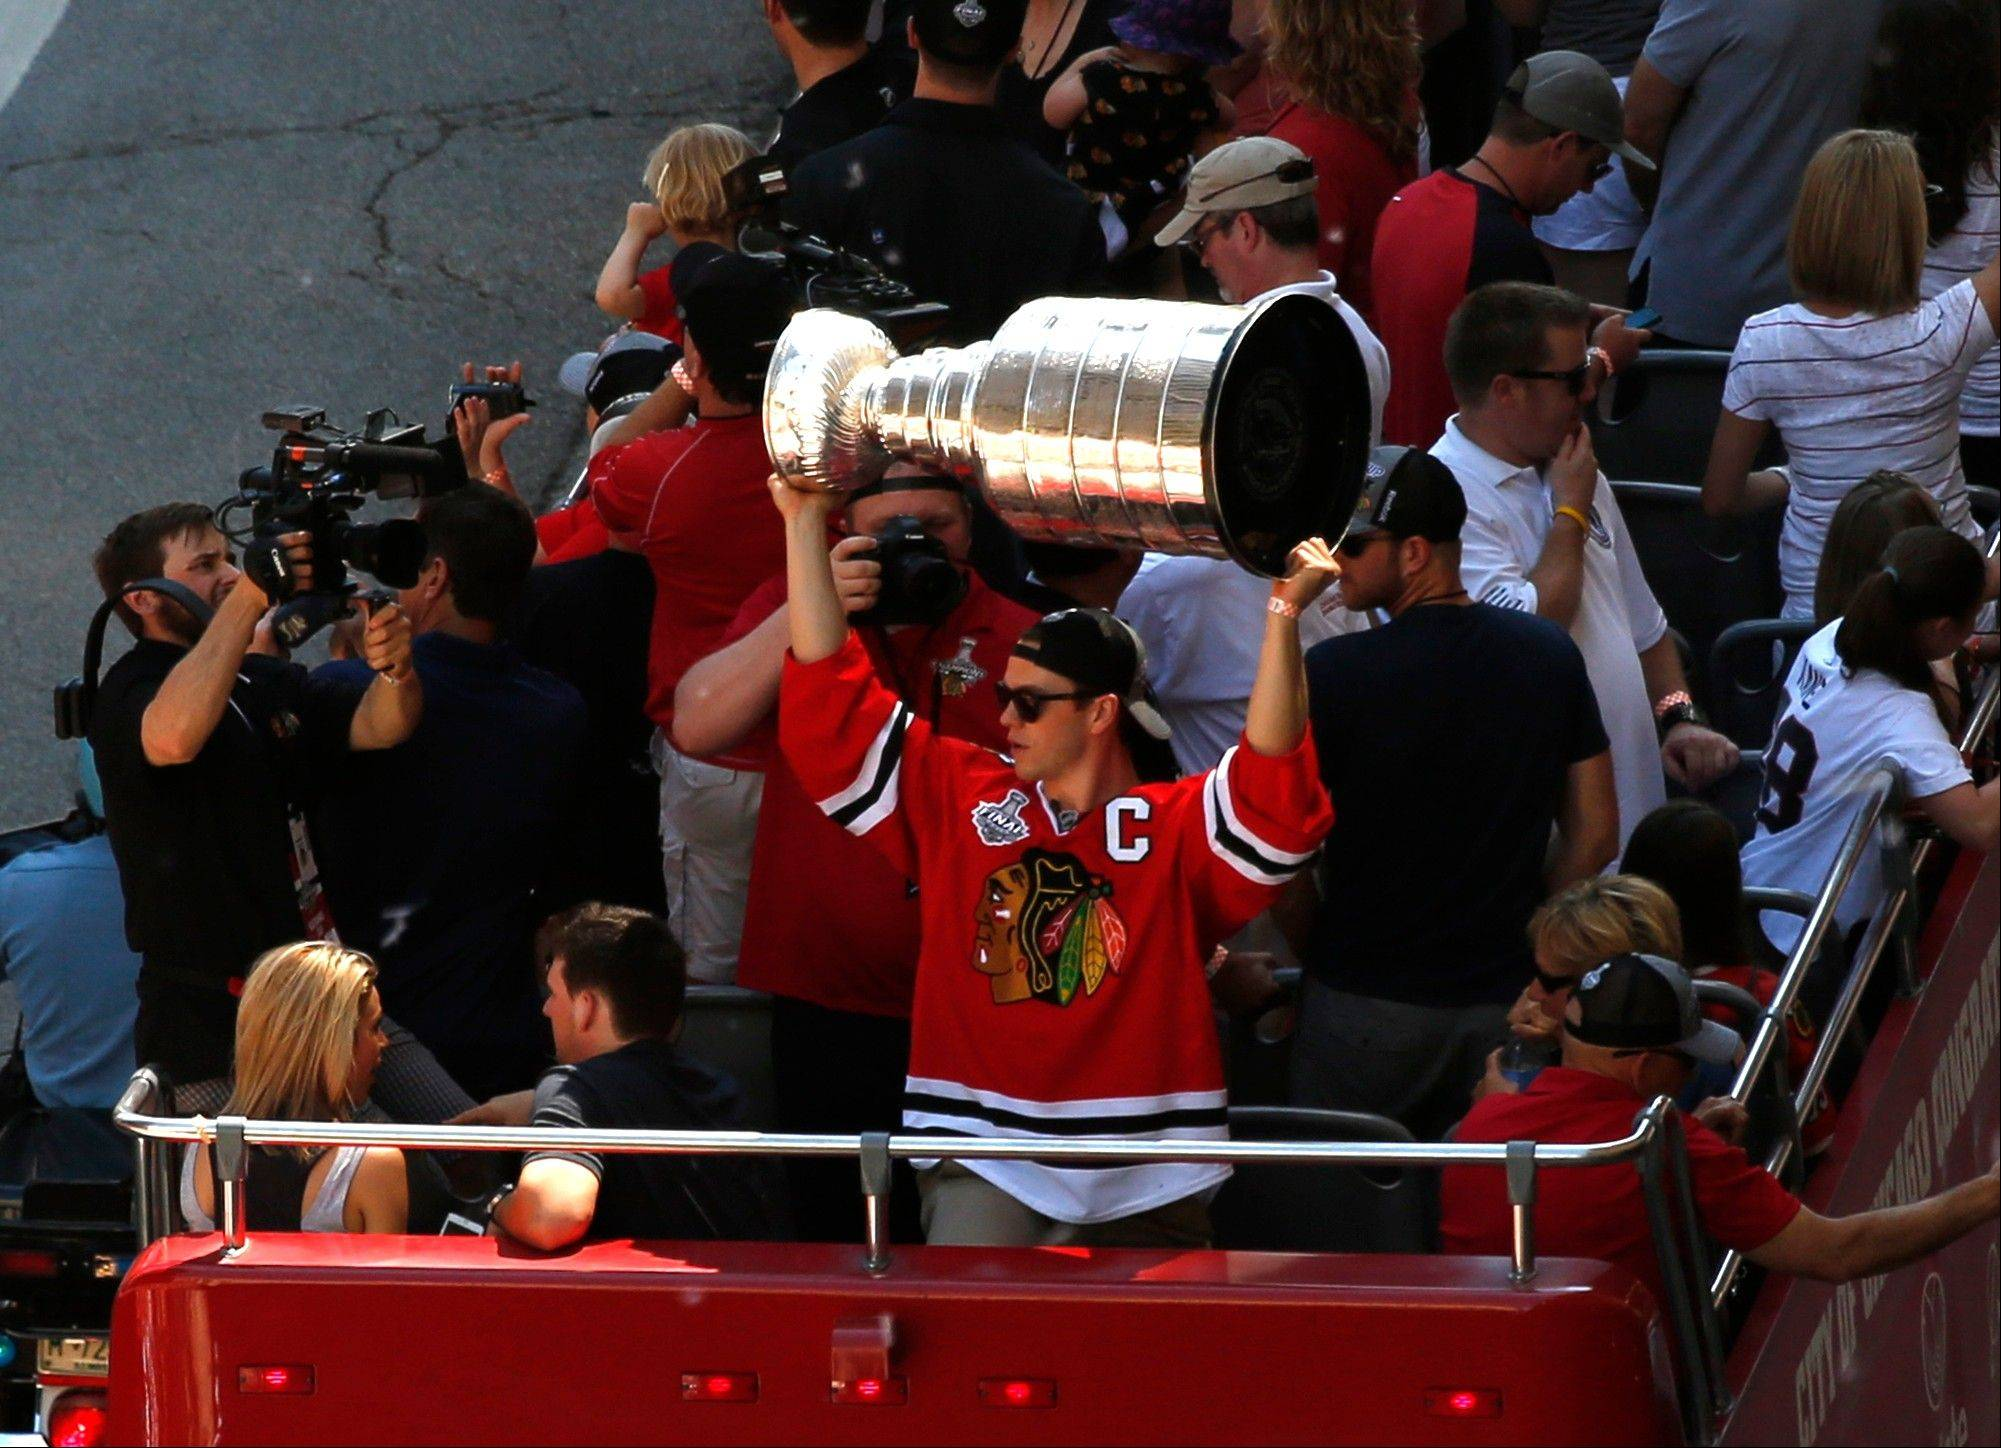 Chicago Blackhawks' Jonathan Toews holds up the 2013 Stanley Cup during a victory parade down Washington Street Friday, June 28, 2013 in Chicago. The Blackhawks celebrate the team's second championship in four years.